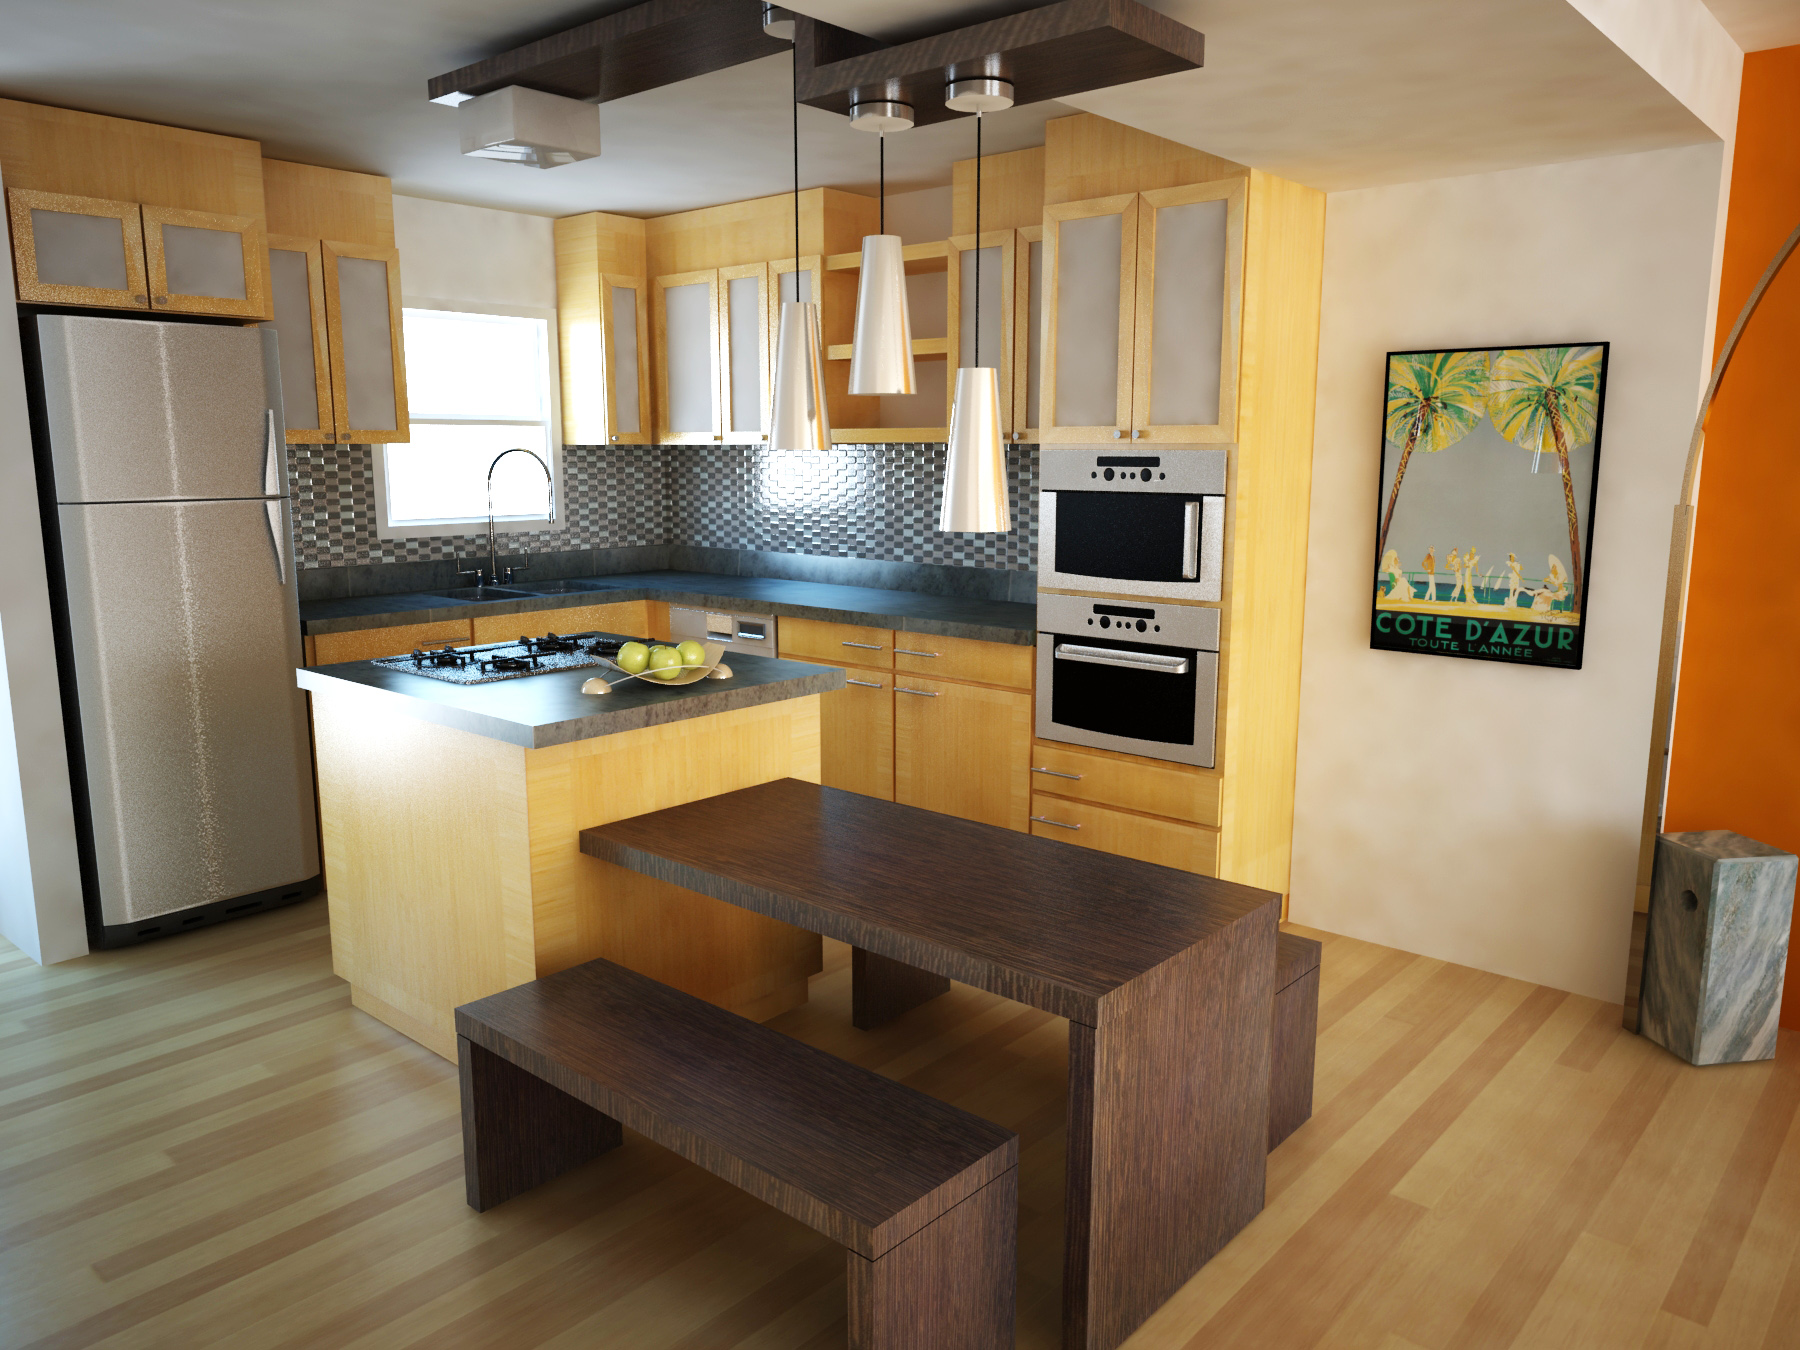 Japan Style Tips Kitchen Makeover (Image 2 of 10)